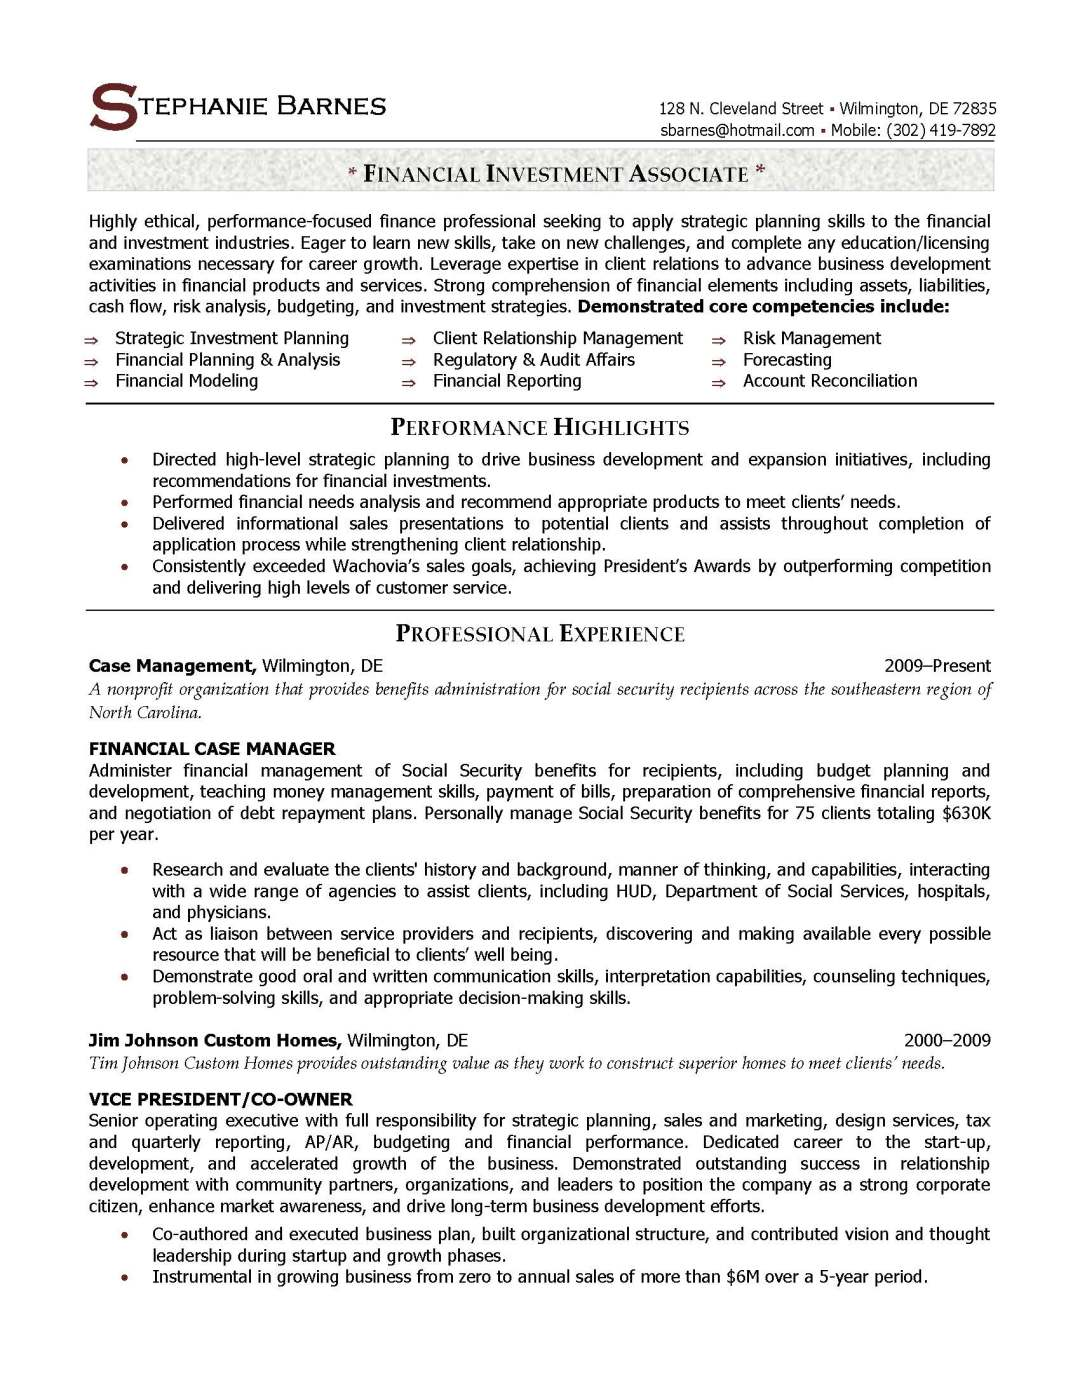 financial investment associate resume sample, provided by Elite Resume Writing Services